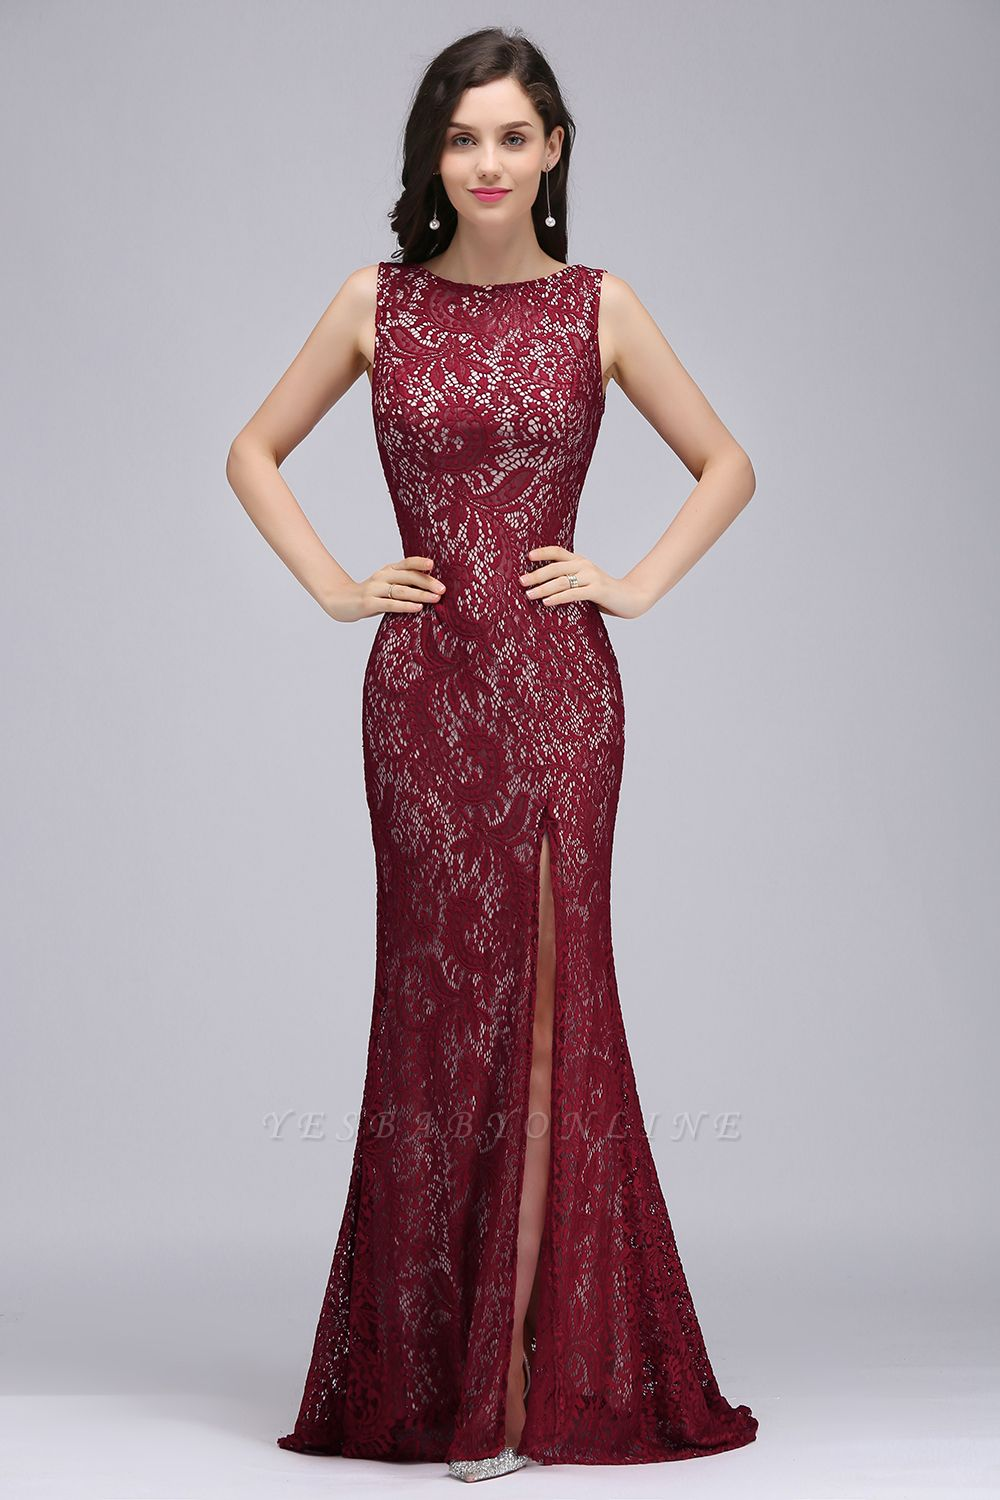 Cheap Crew Front-split Backless Prom Dress Sweep-train Sleeveless Burgundy Lace Mermaid Evening Dress in Stock